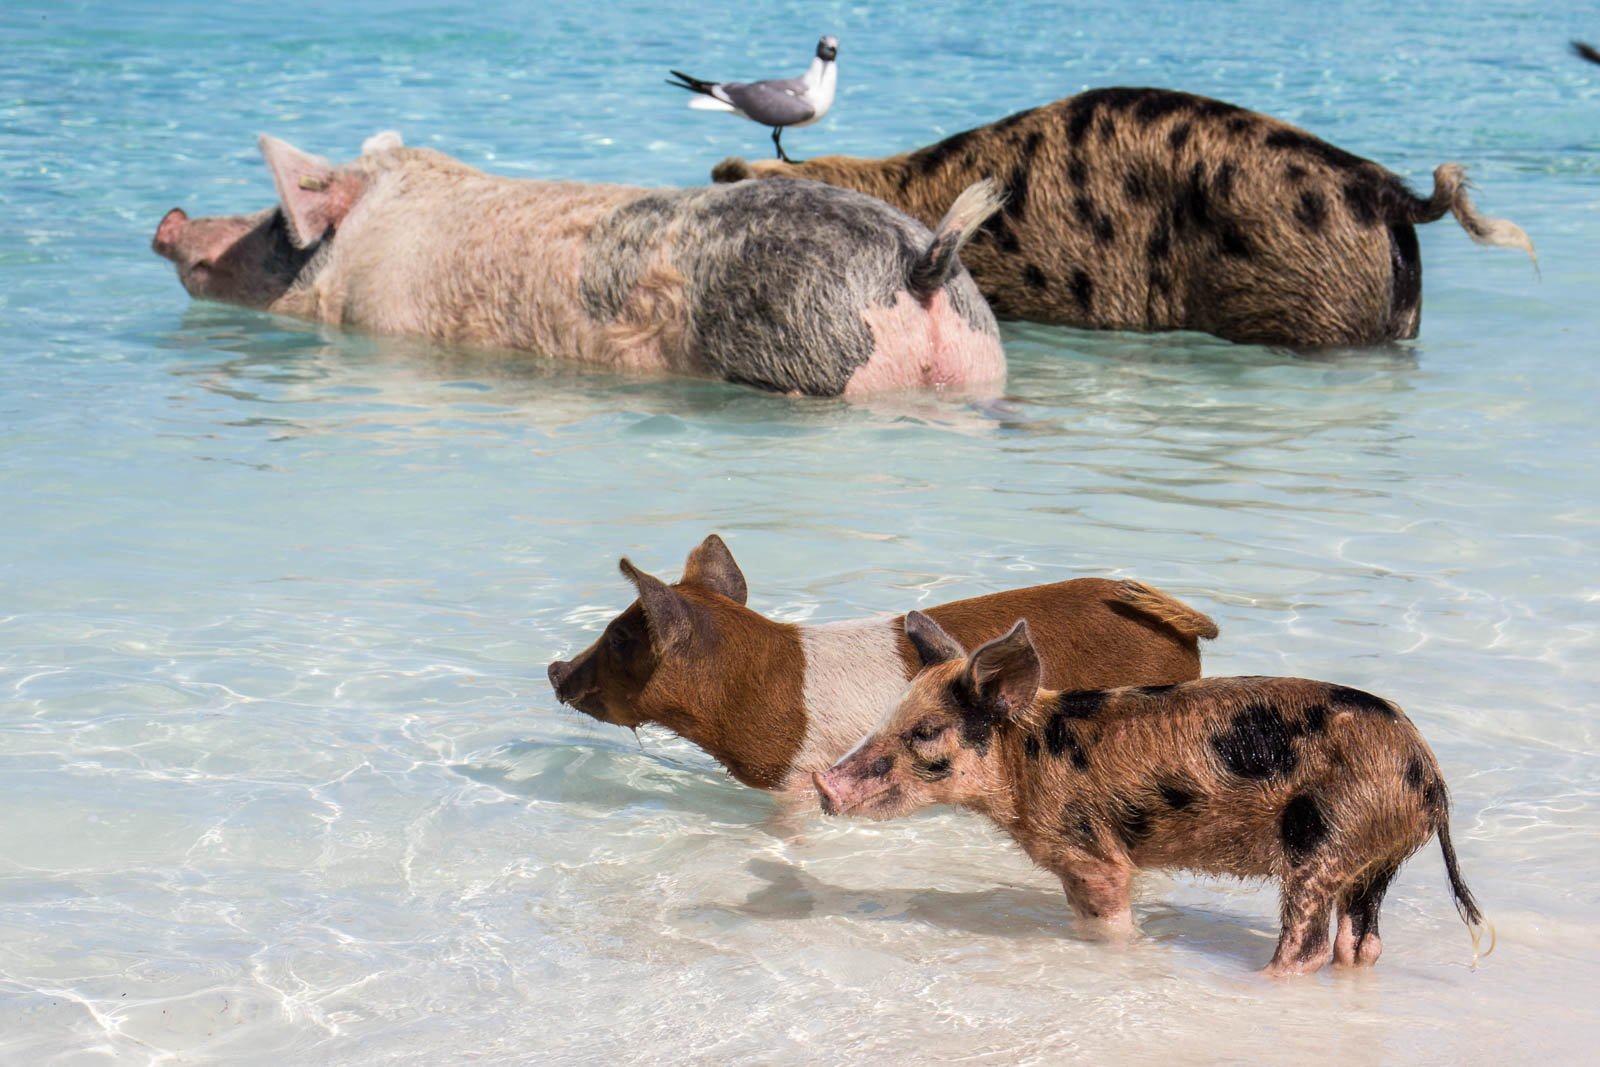 A day trip to Bahamas from Miami to see the Exuma pigs. Your one day trip to Bahamas will likely include a stop at Pig Island's Pig Beach.